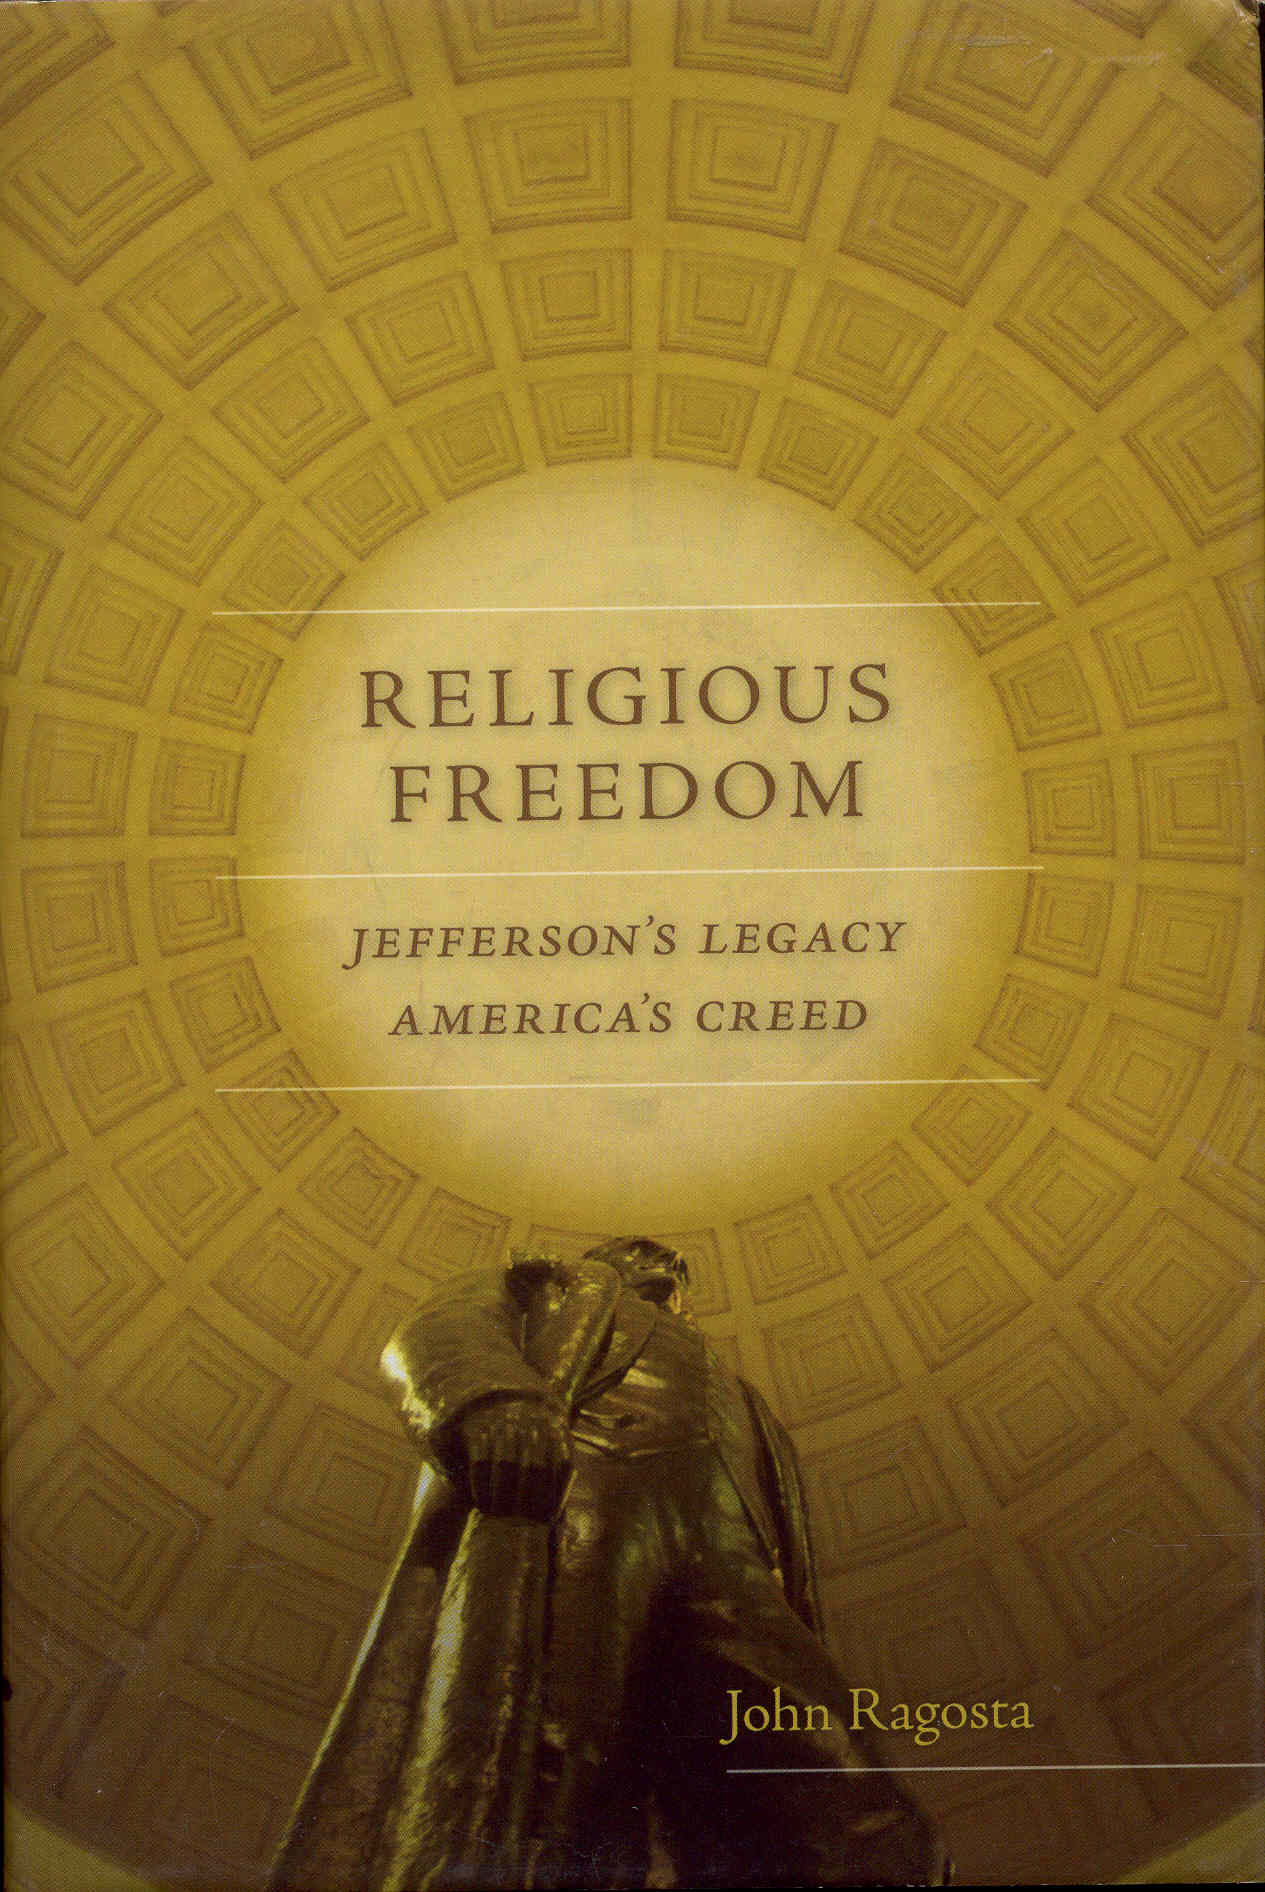 Image for Religious Freedom: Jefferson's Legacy, America's Creed